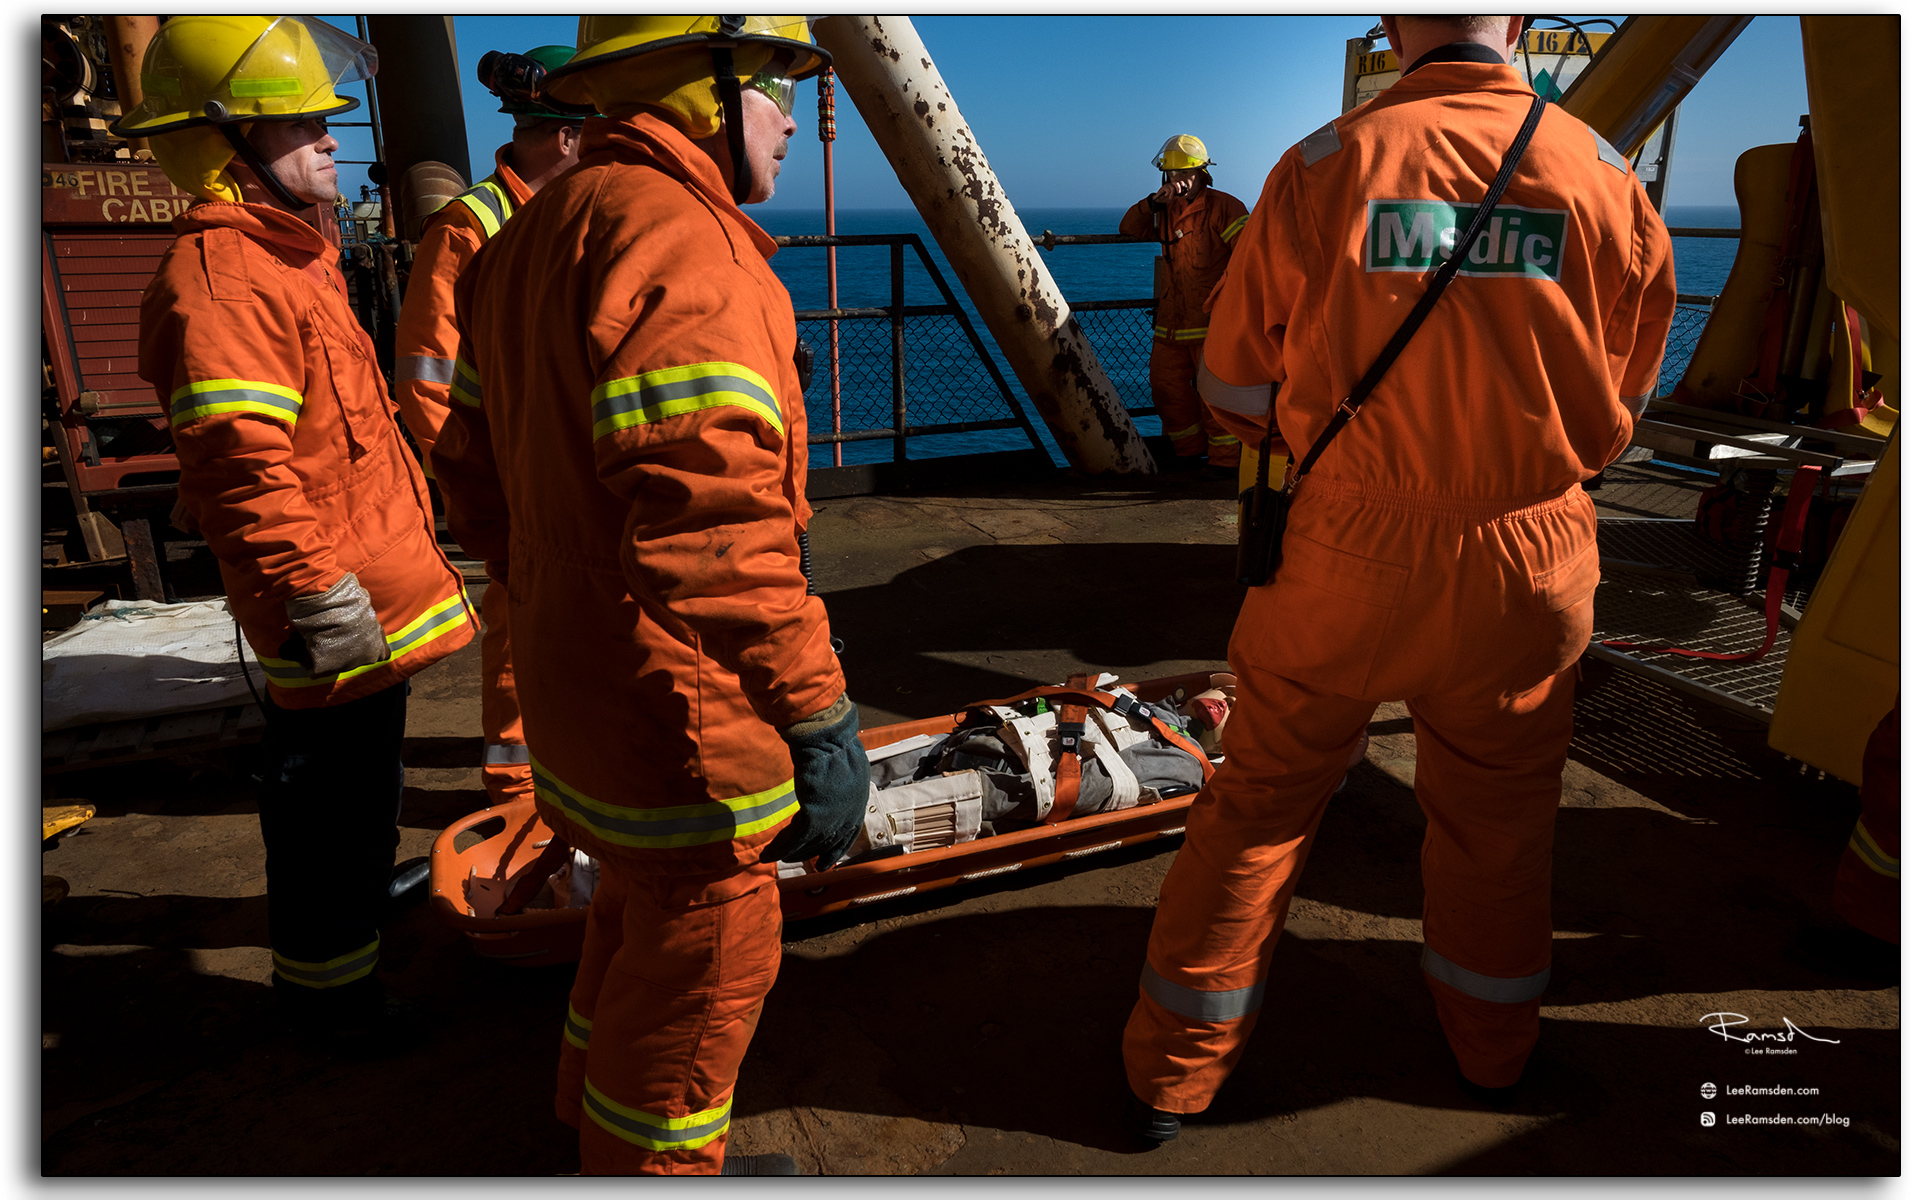 casuilty on a stretcher, medical team, responding, offshore, oil and gas industry.